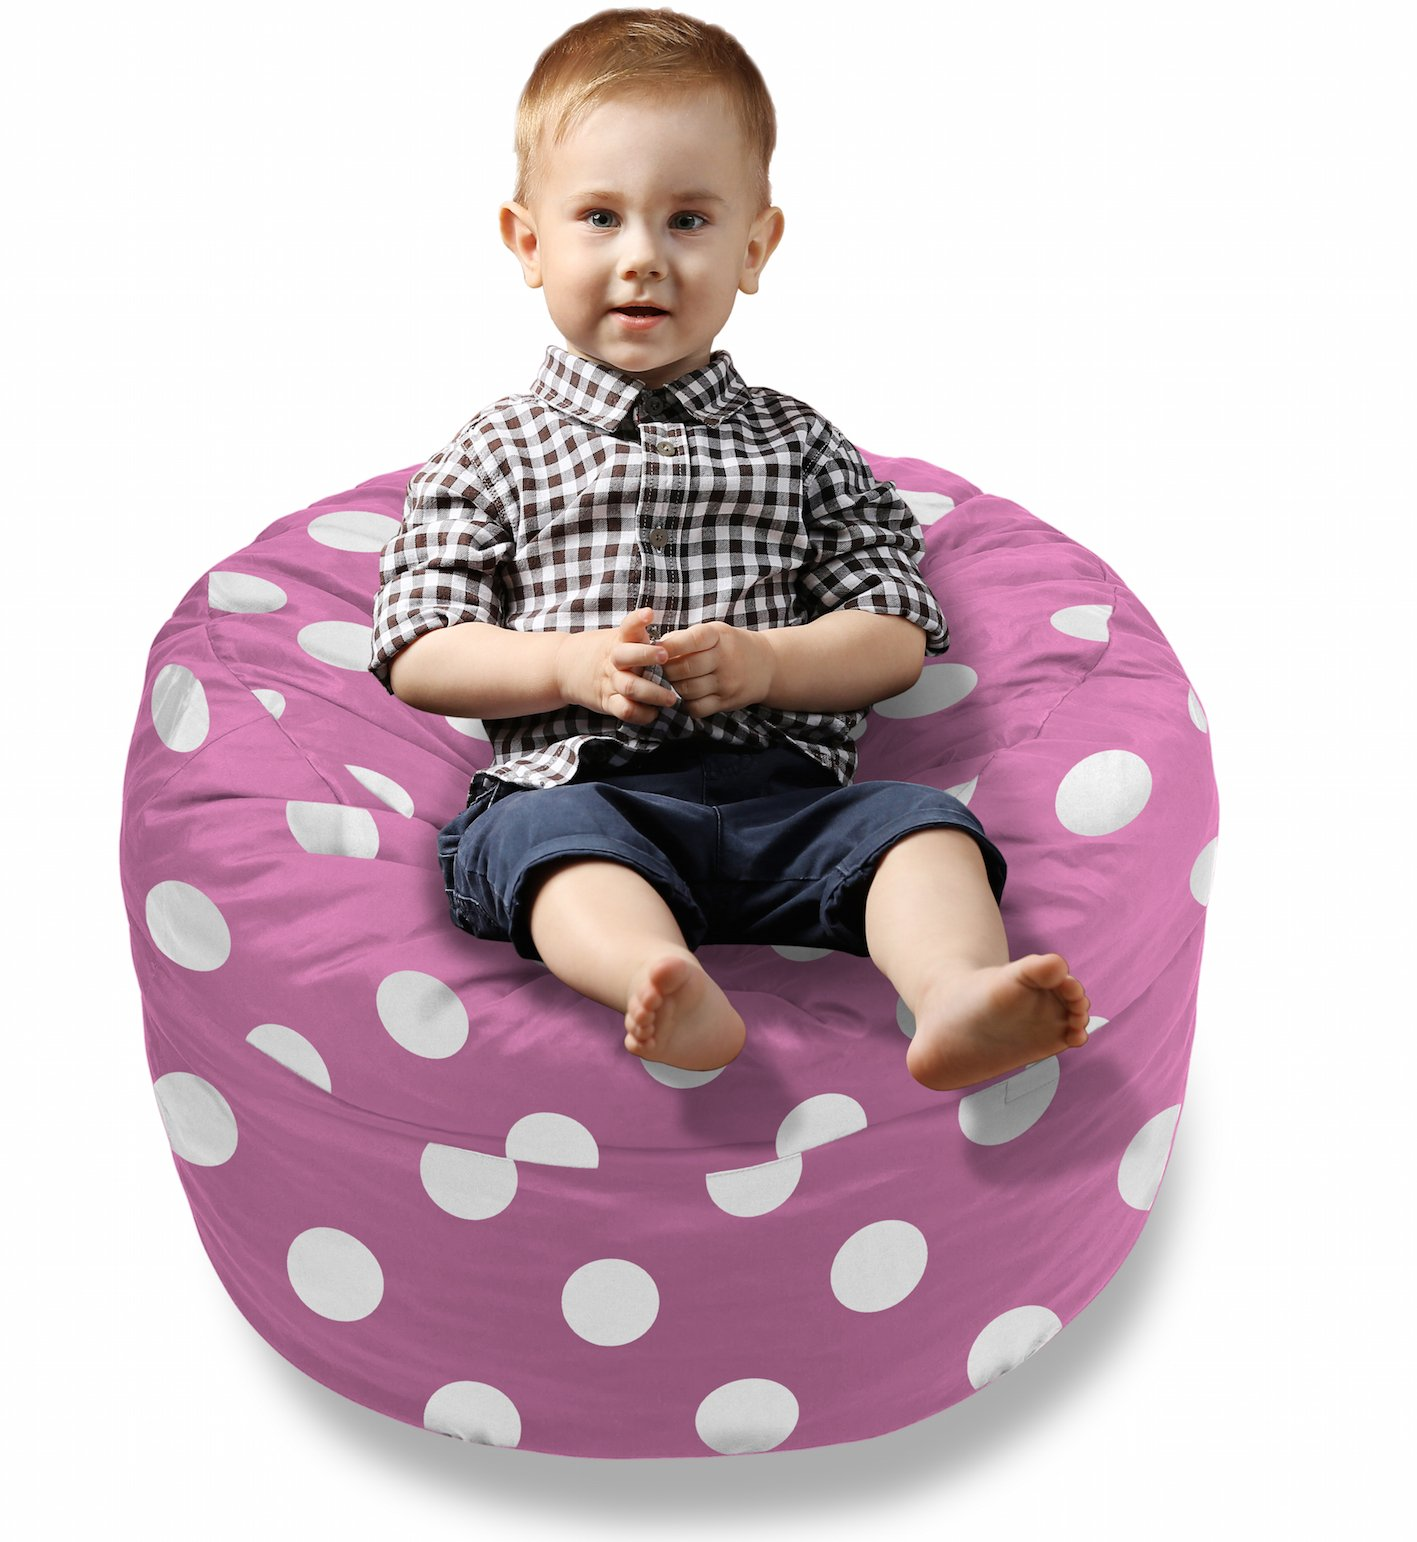 BeanBob Bean Bag Chair Cushion (Pink w/Polka Dots) 2ft - Bedroom Sitting Sack for Toddlers & Small Children w/Super Soft Foam Filling by BeanBob